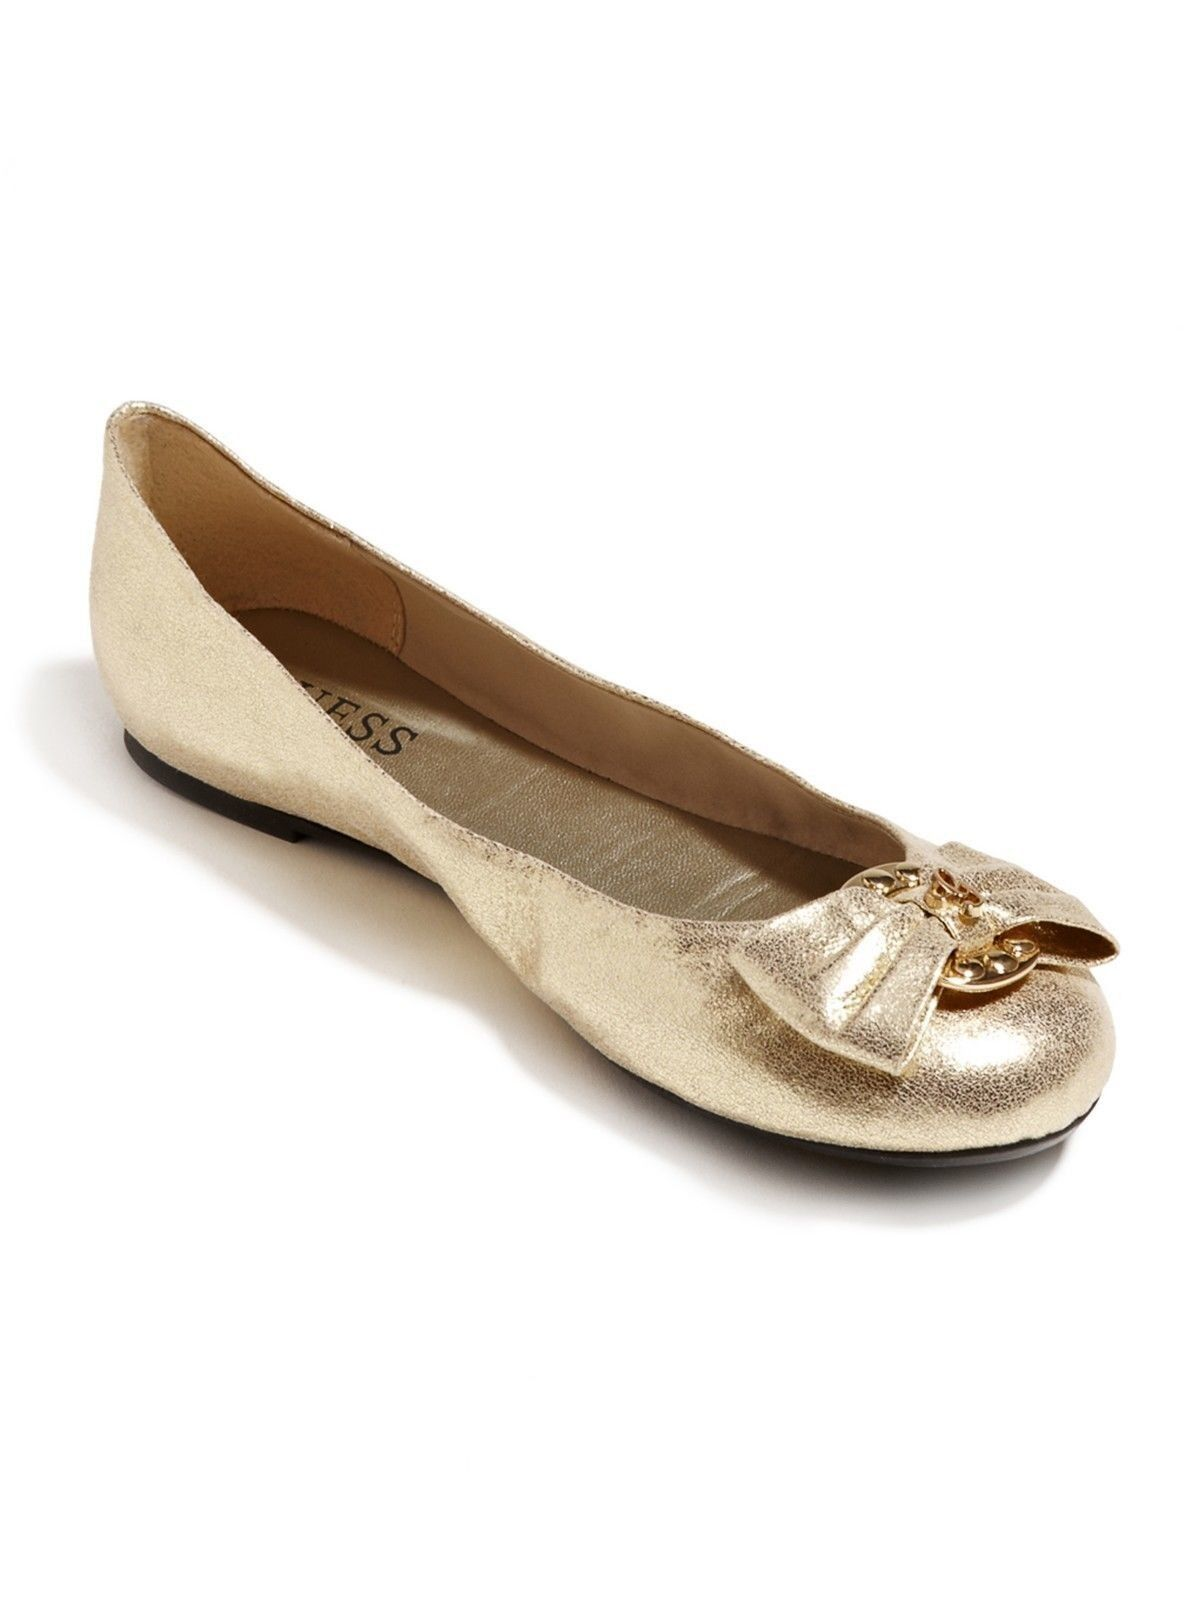 GUESS donna Girl Friend Ferne oro Fabric Ballet Flats scarpe with Bow ALL DimensioneS